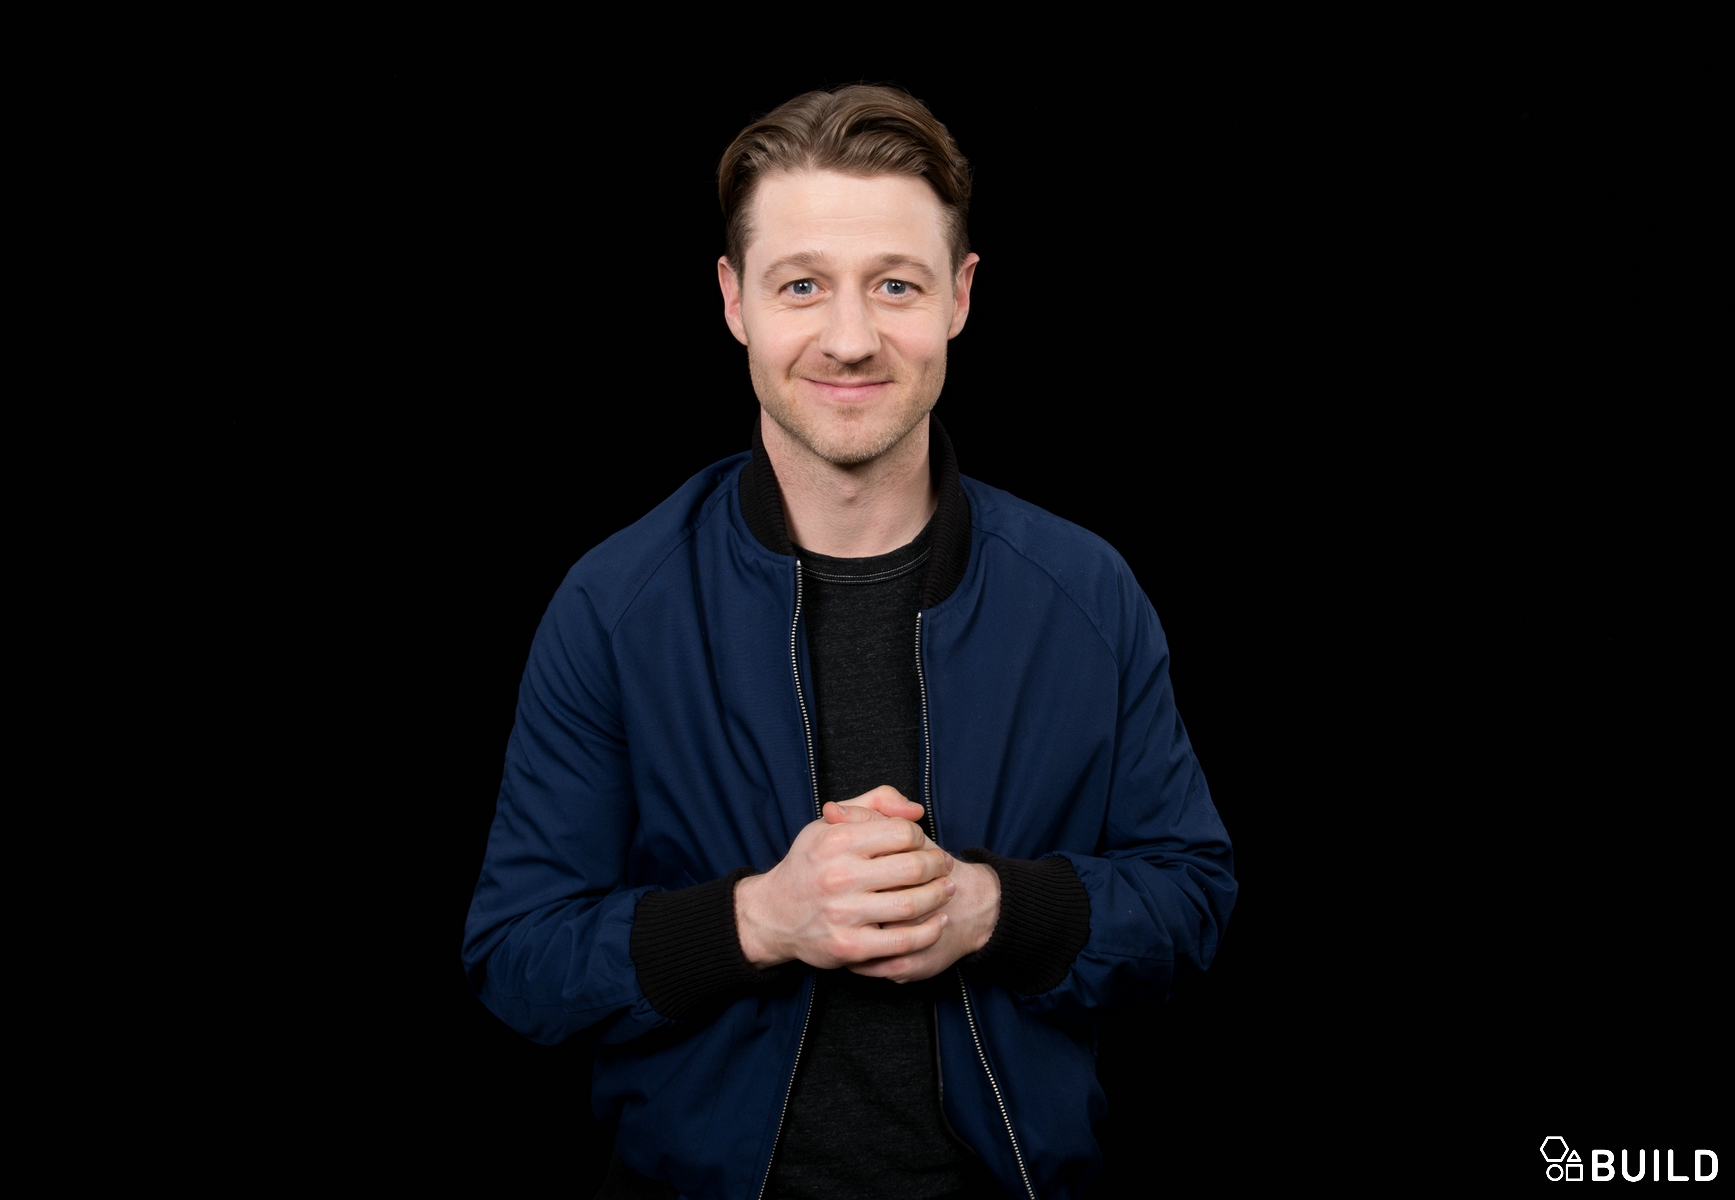 Ben McKenzie visits AOL Hq for Build on February 29, 2016 in New York. Photos by Noam Galai